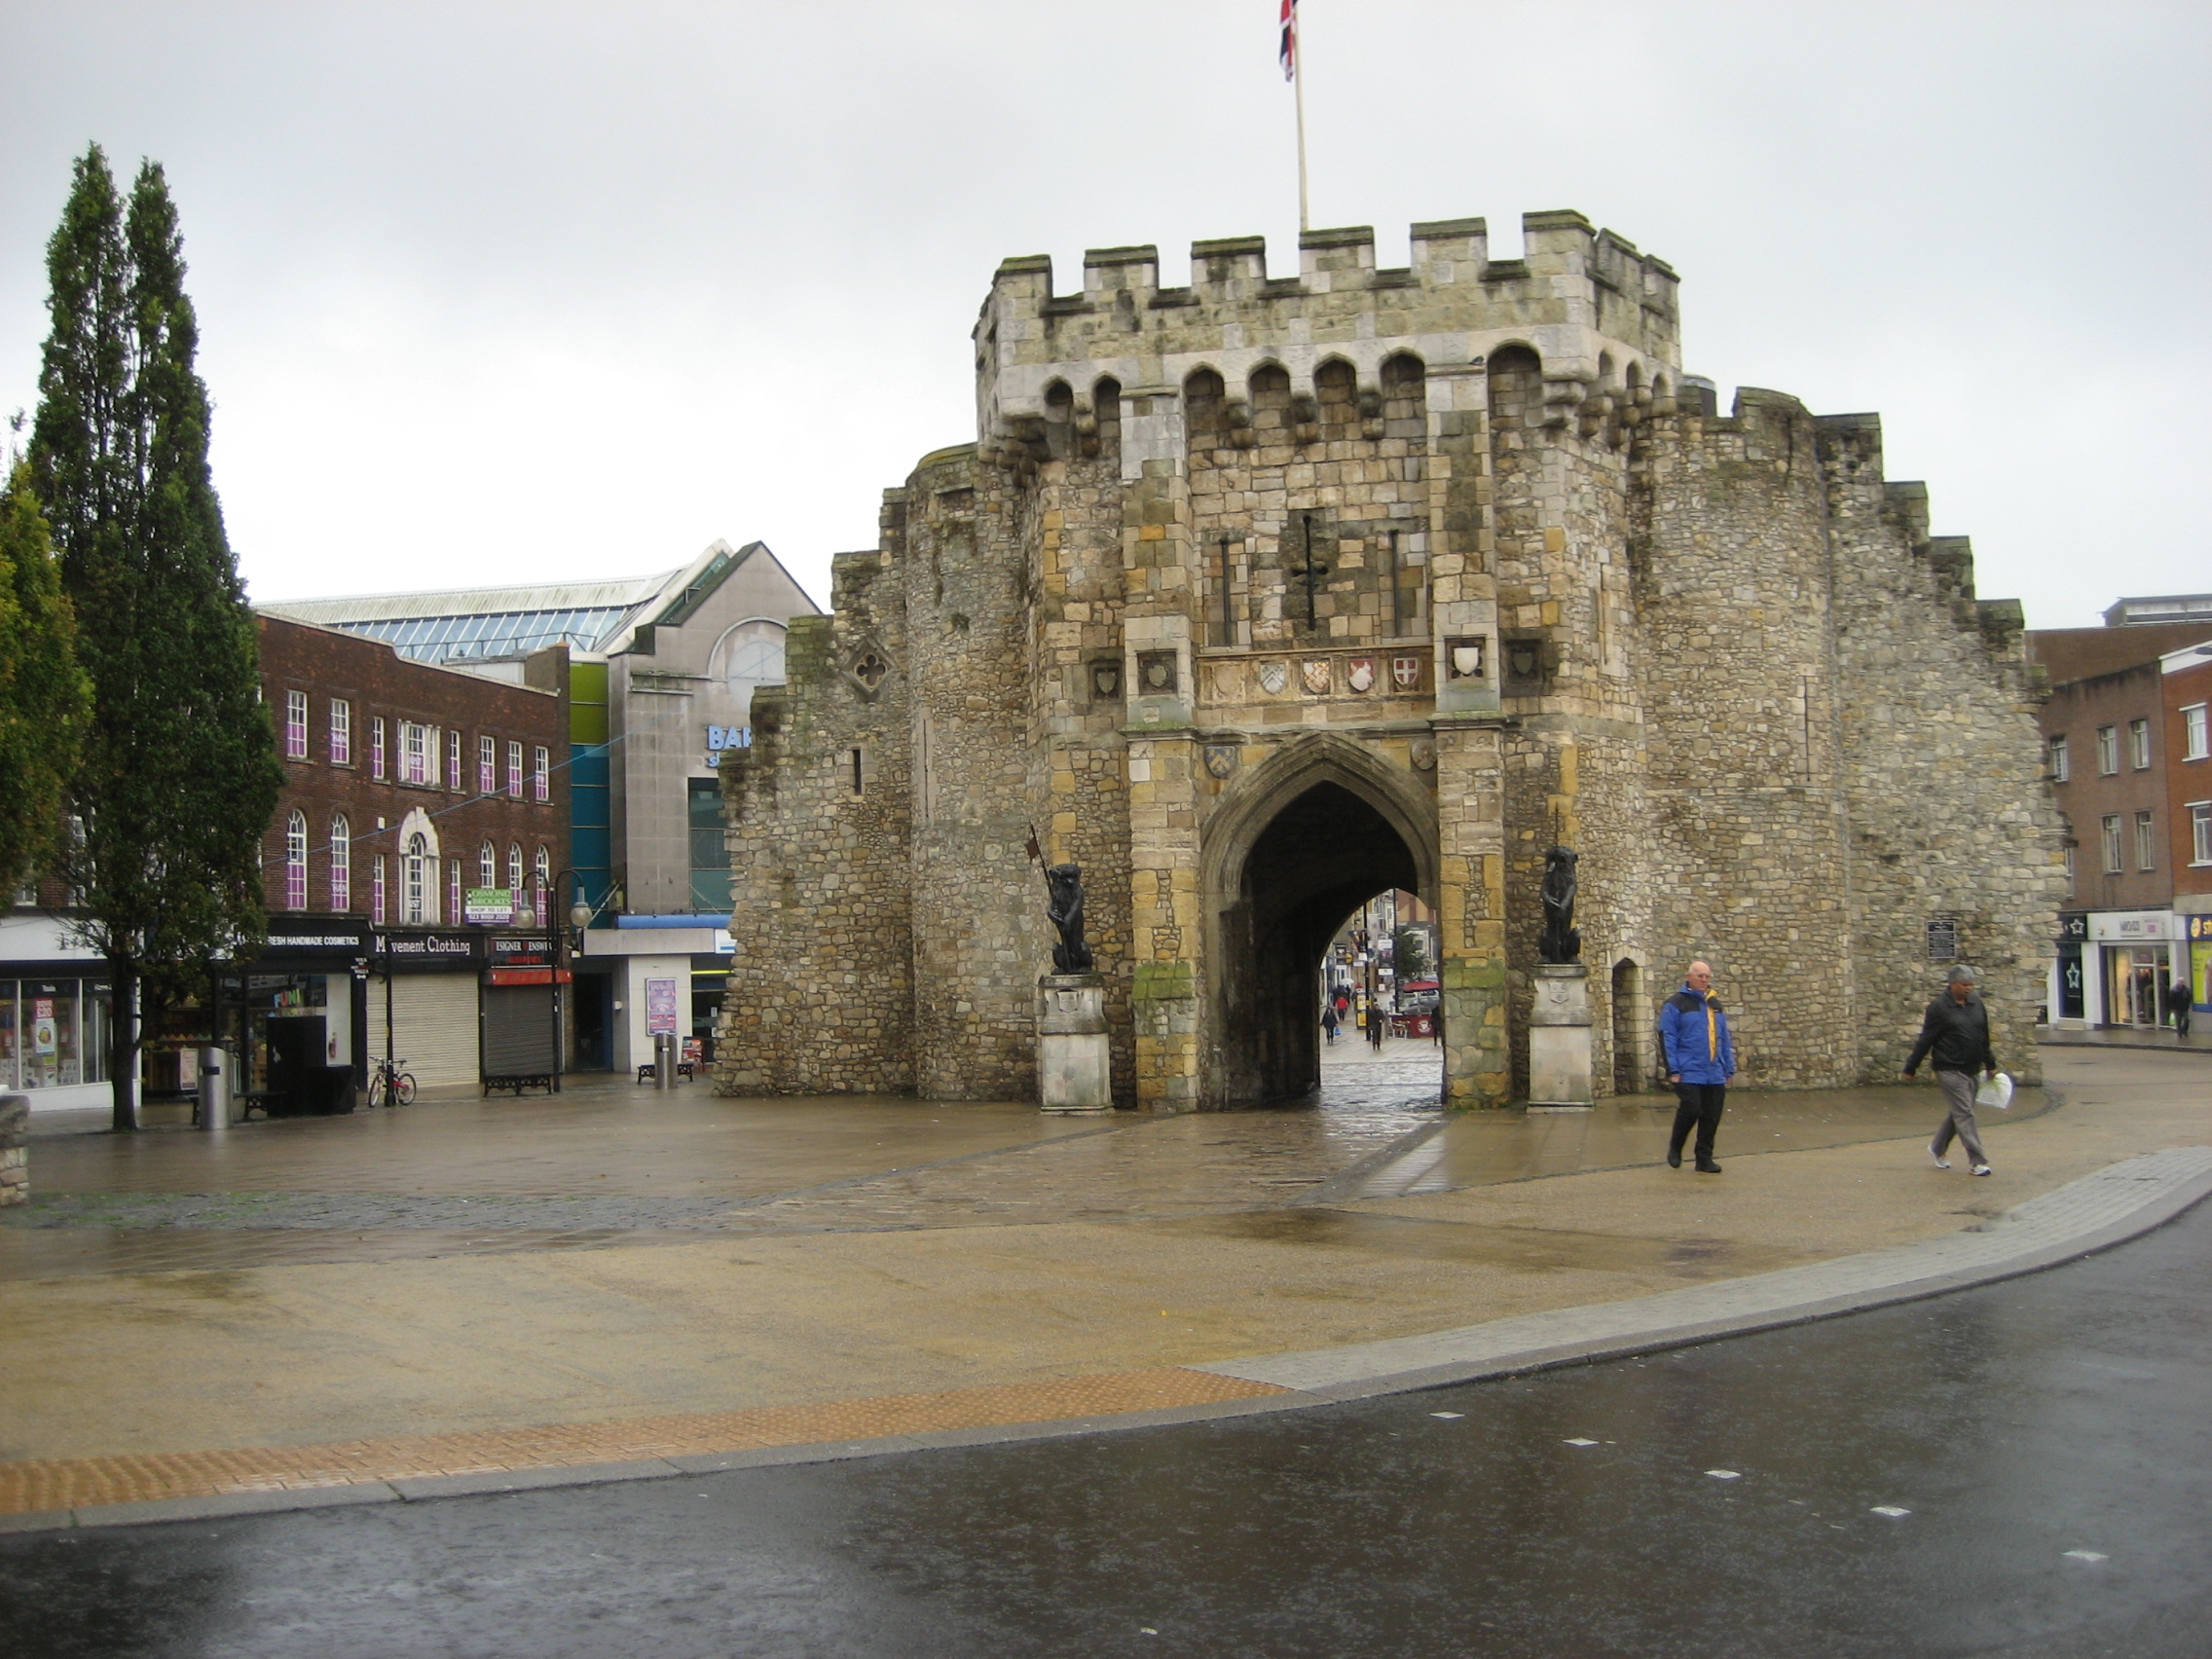 Historic Bargate to Receive Makeover